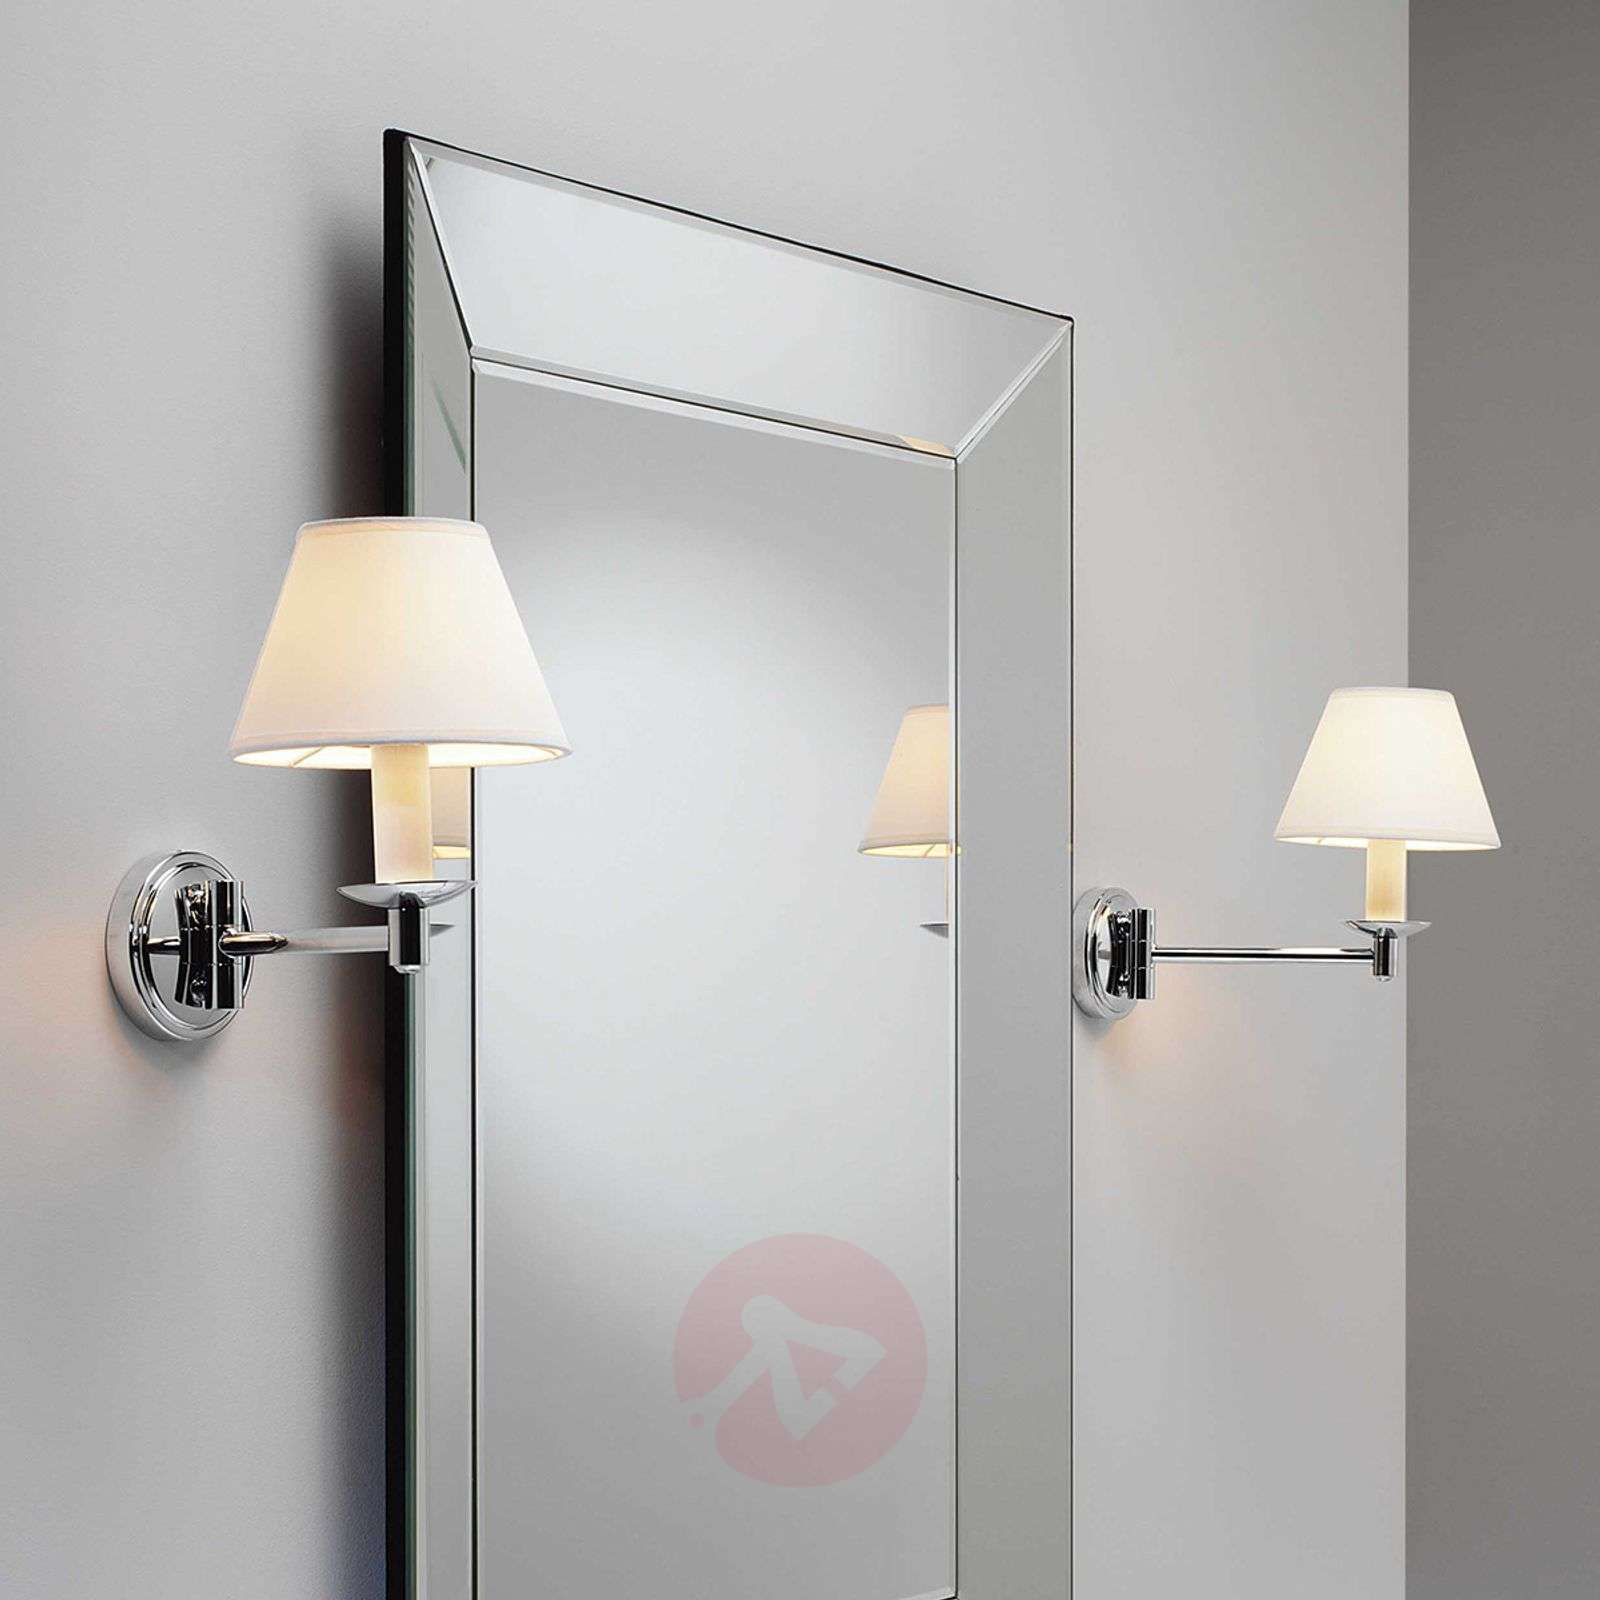 Grosvenor LED Mirror Light for the Bathroom-1020456-05